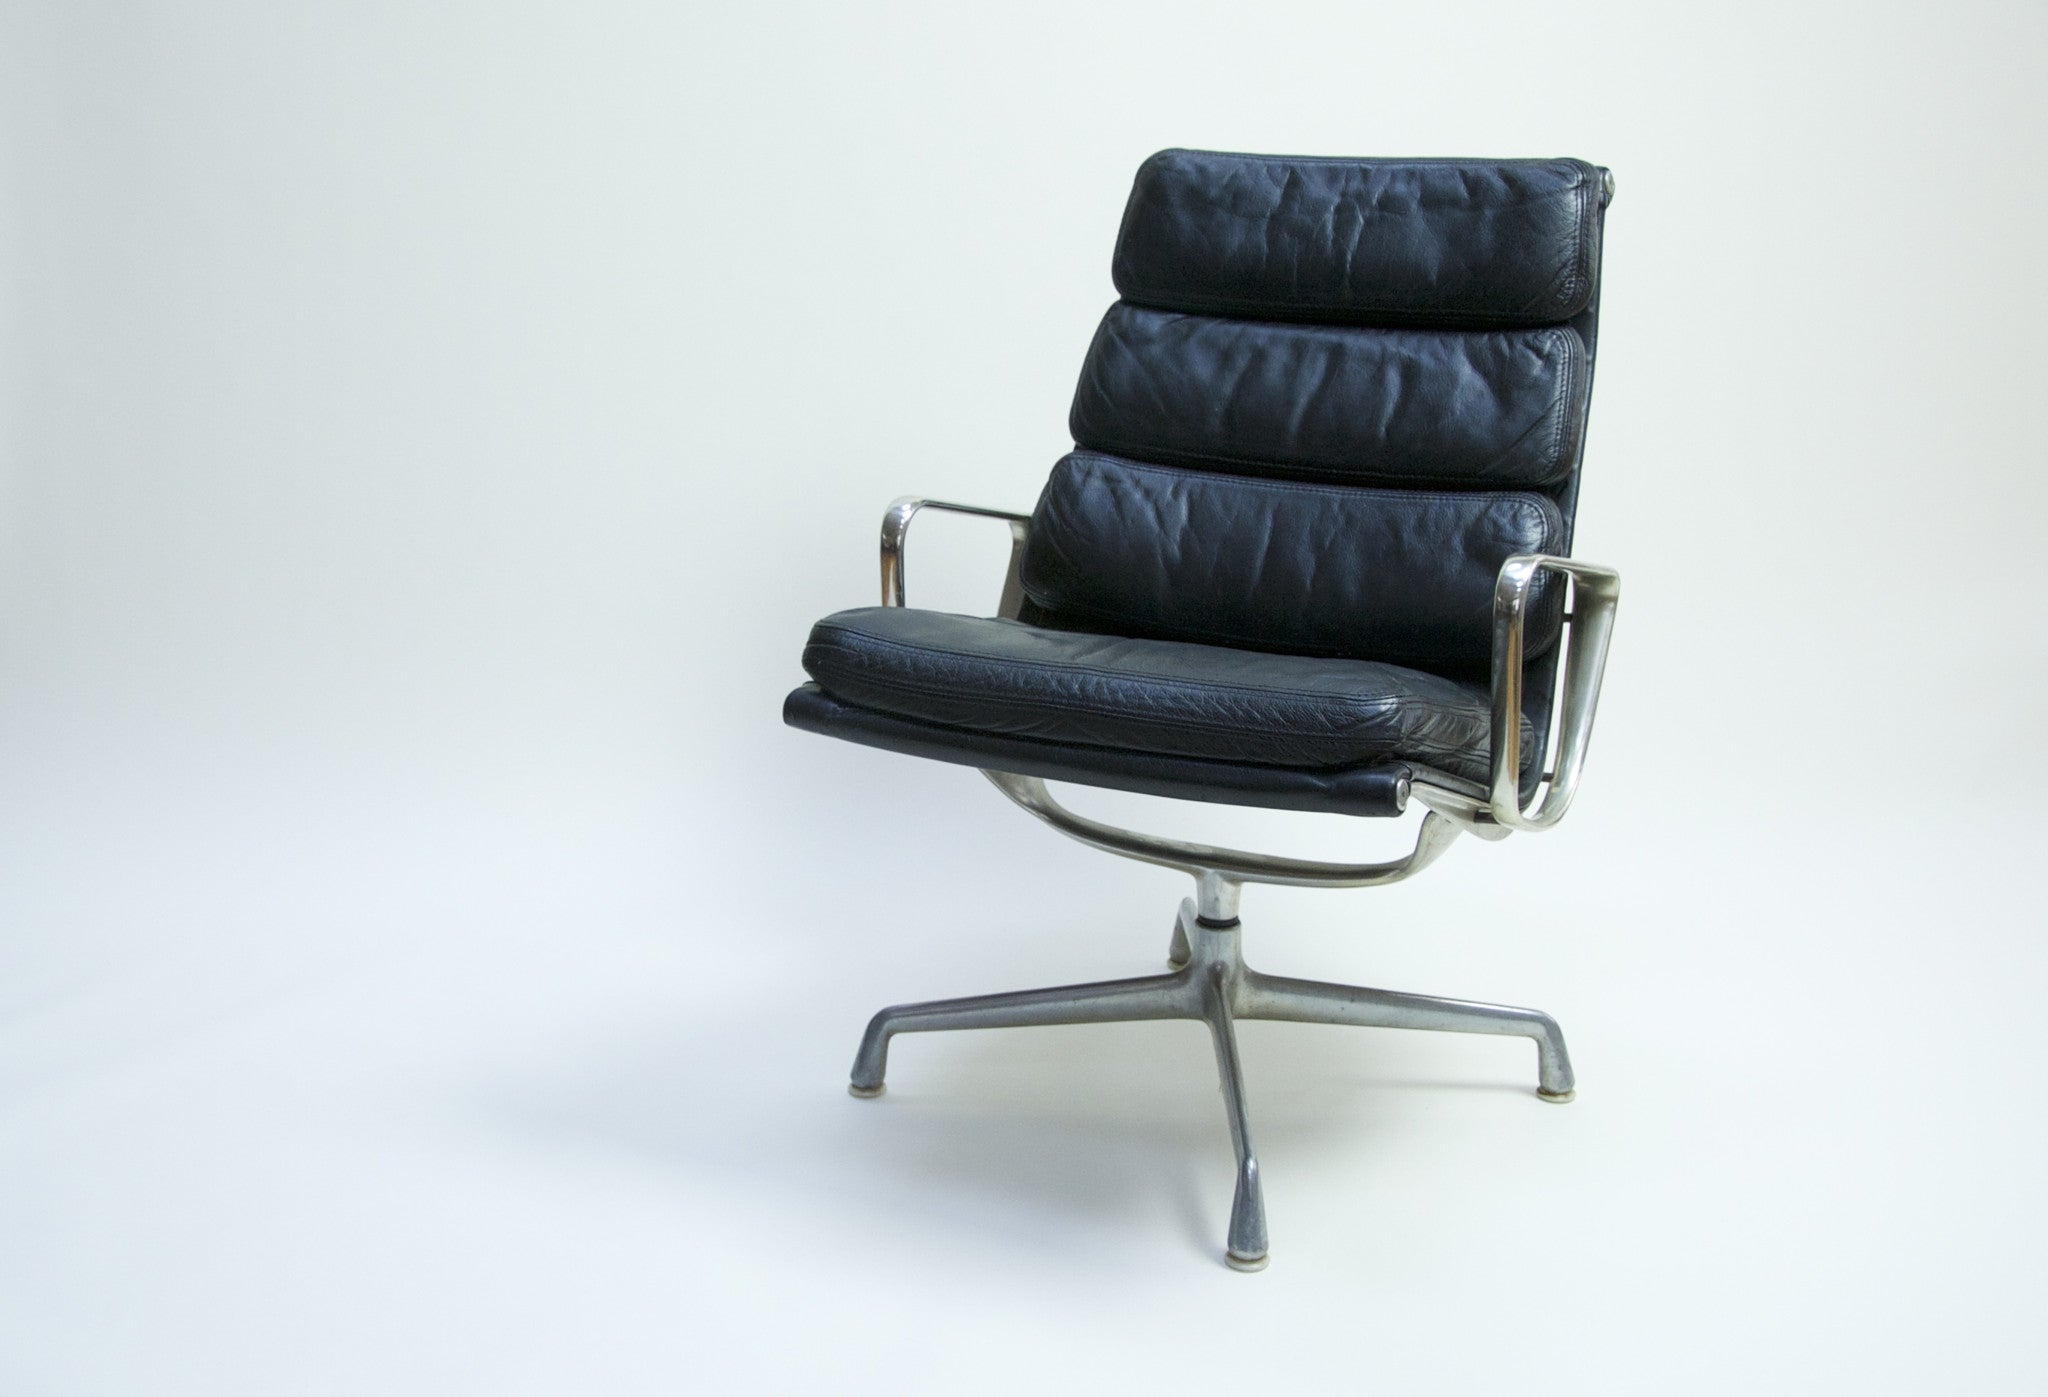 SOLD Eames Herman Miller Soft Pad Lounge Chair #2